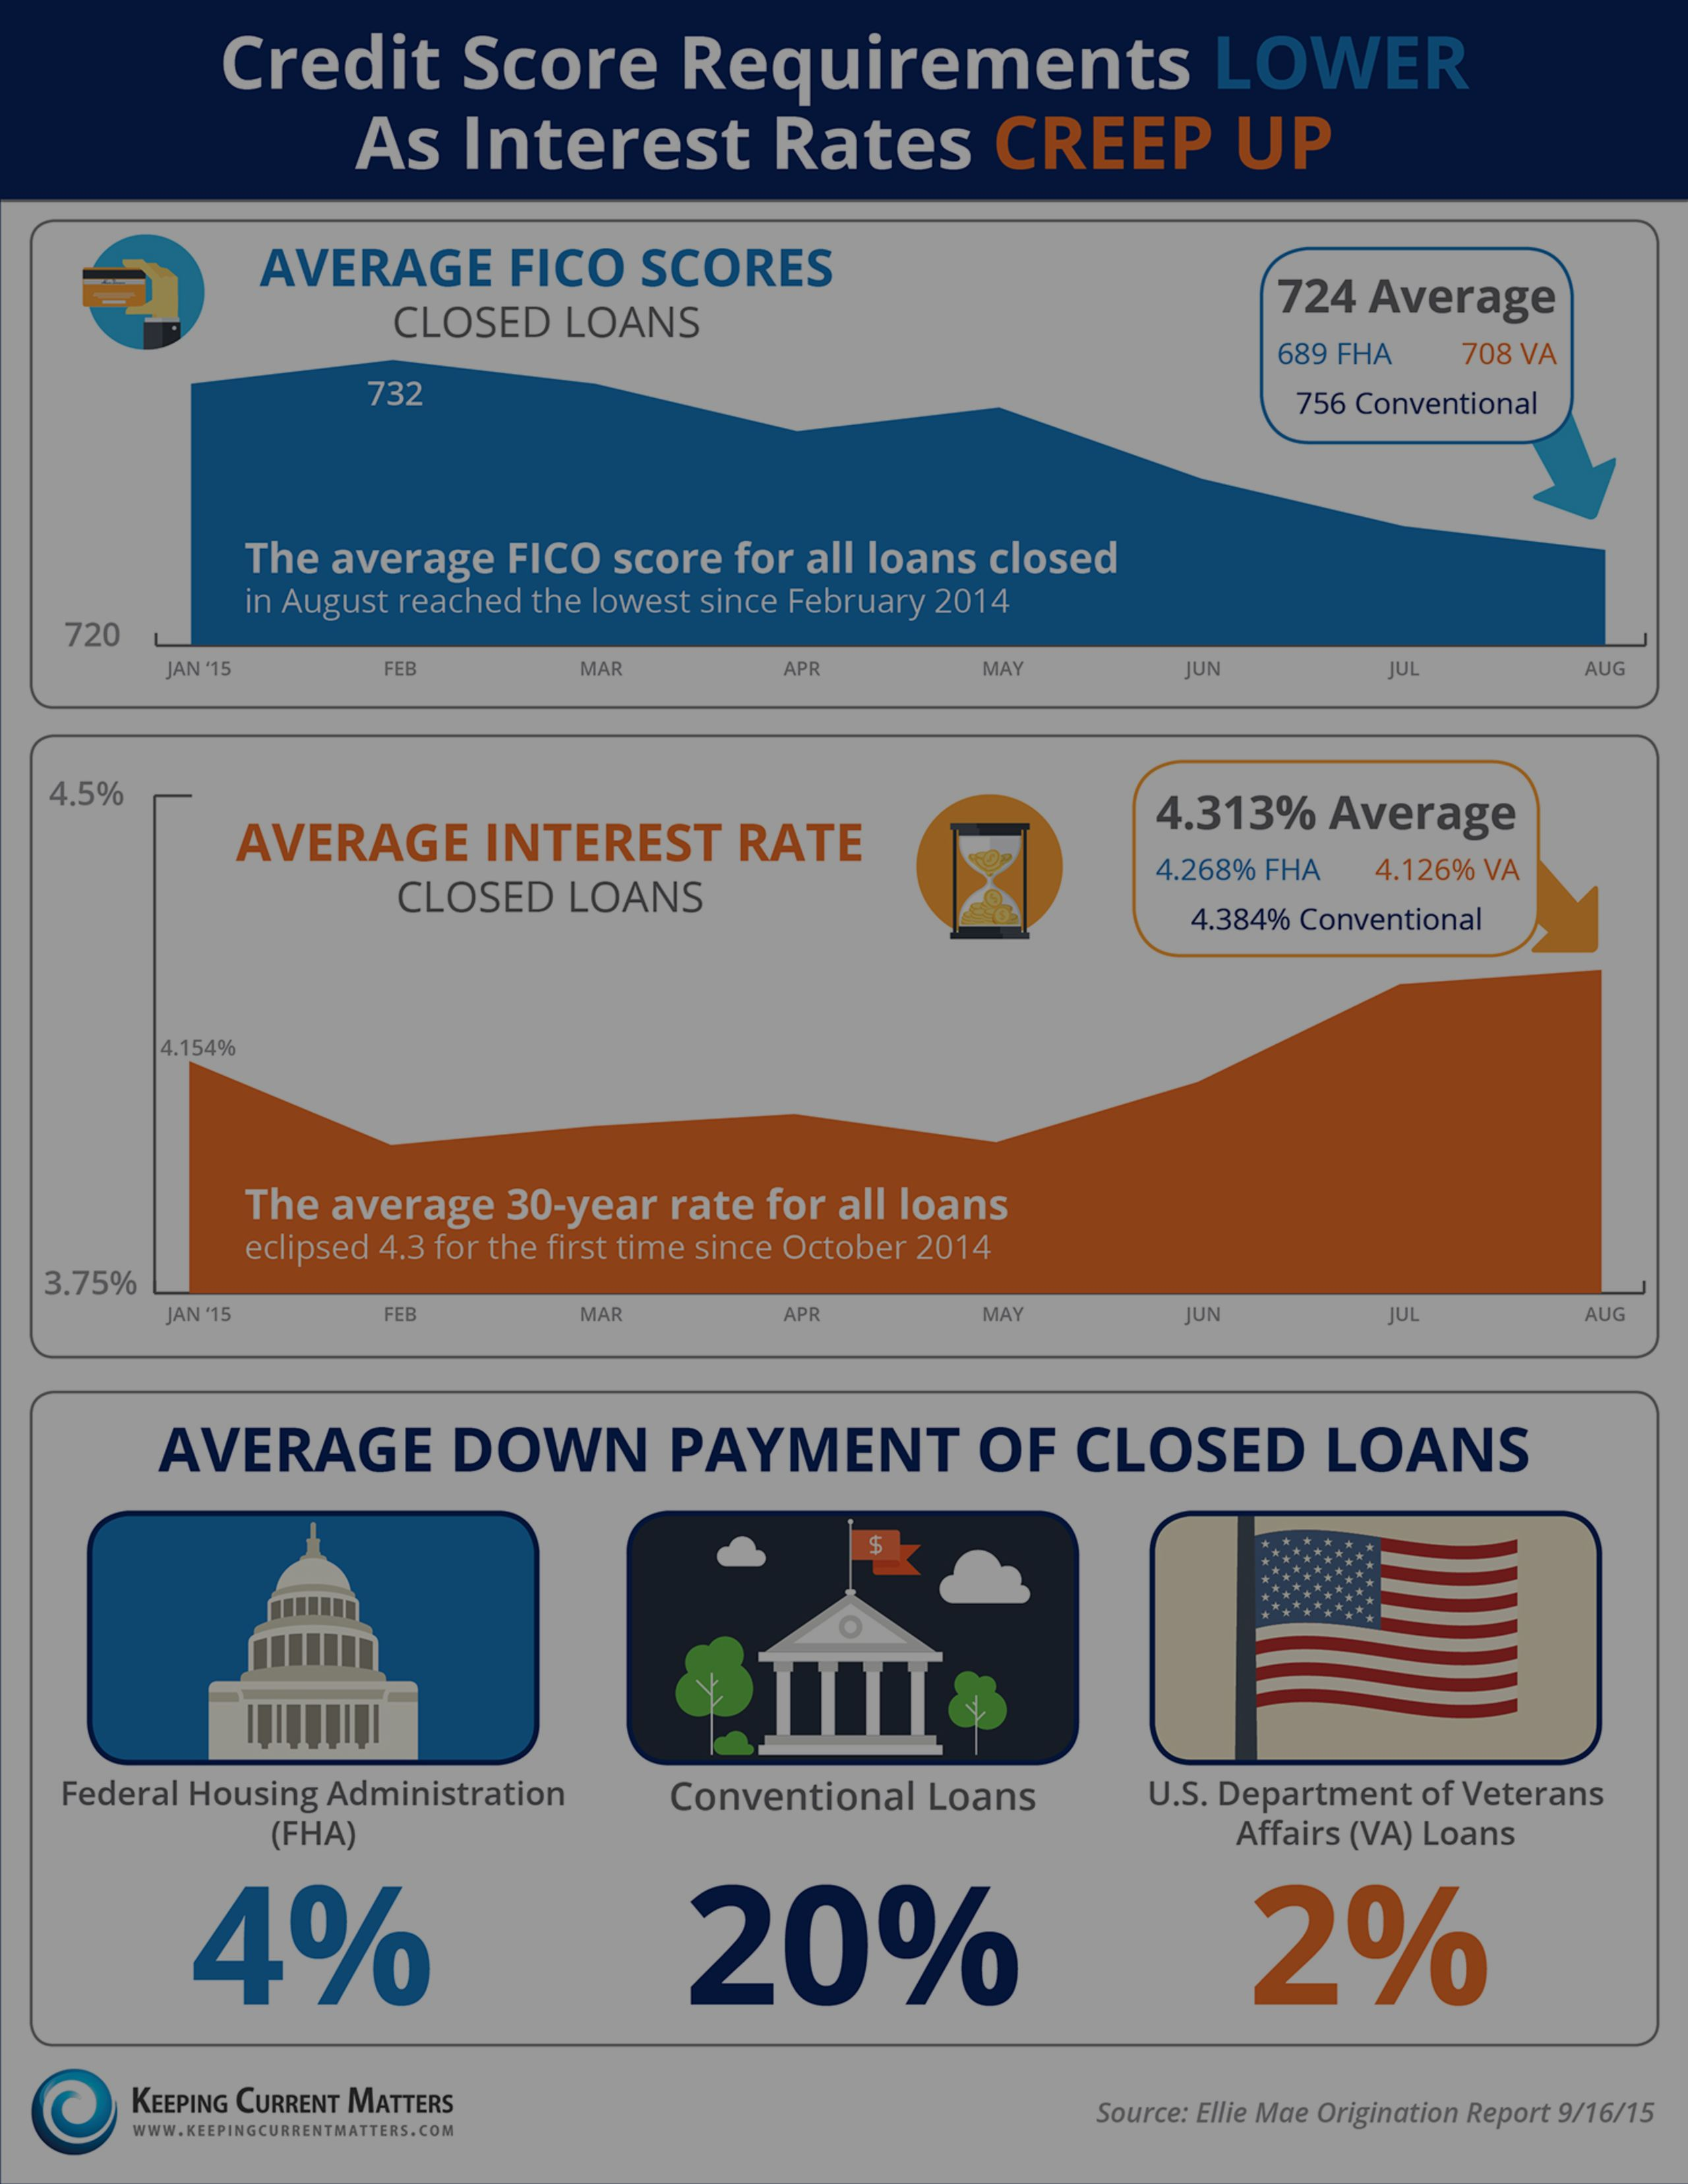 Credit Score Requirements LOWER As Interest Rates CREEP UP!